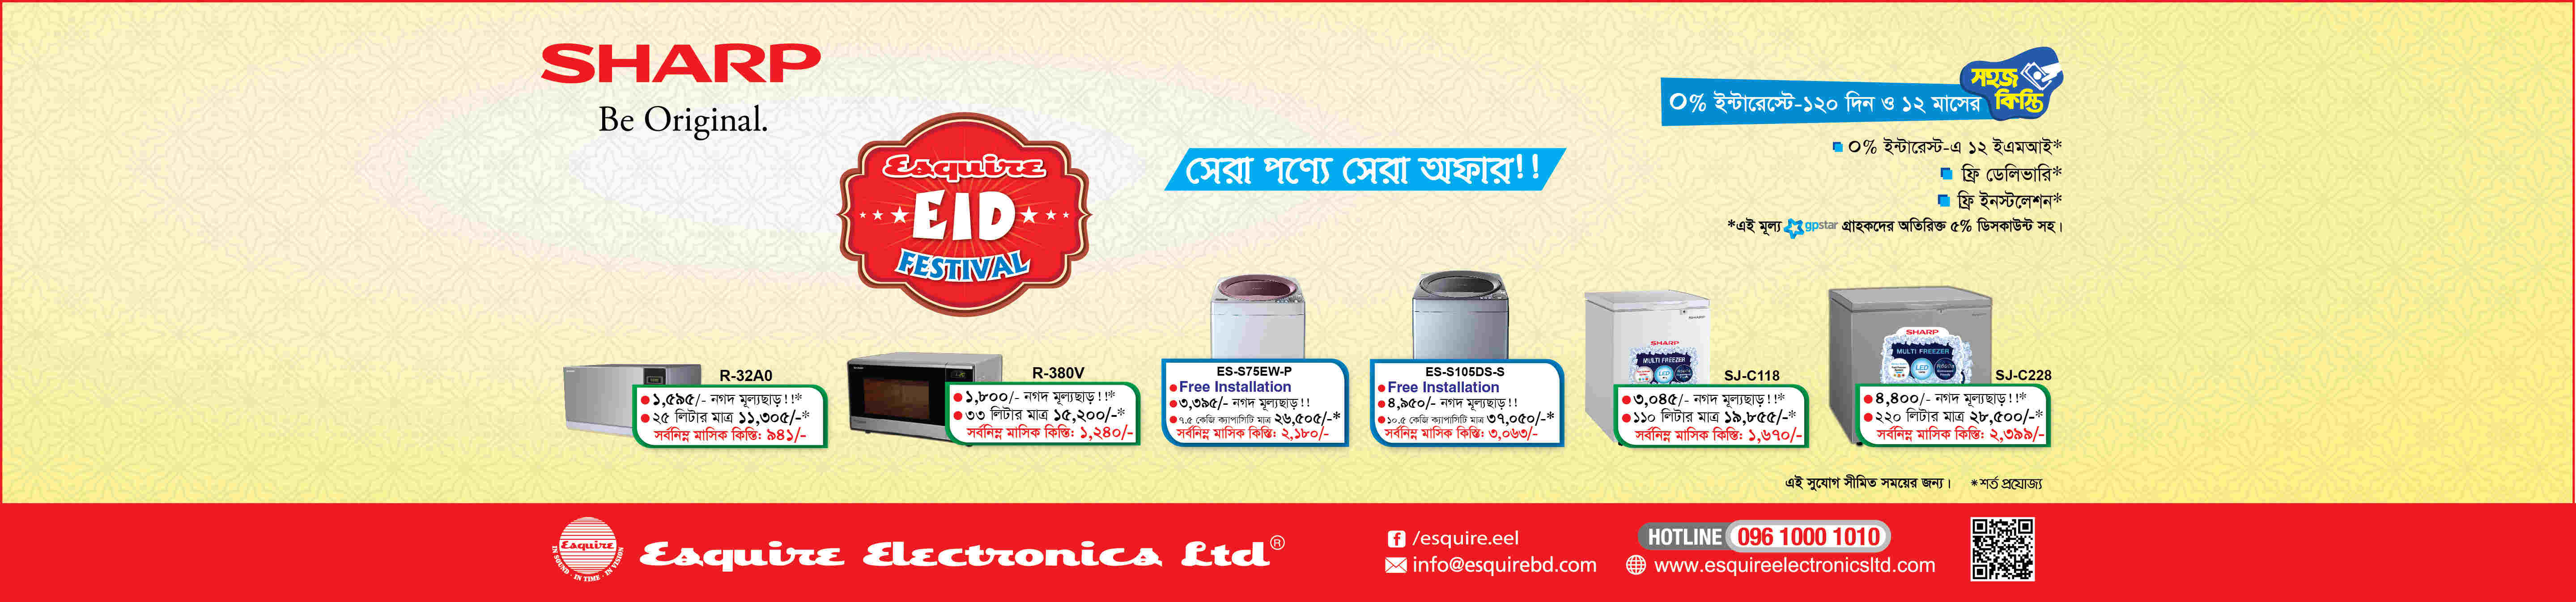 Esquire Electronics Kurbani Offer 2019